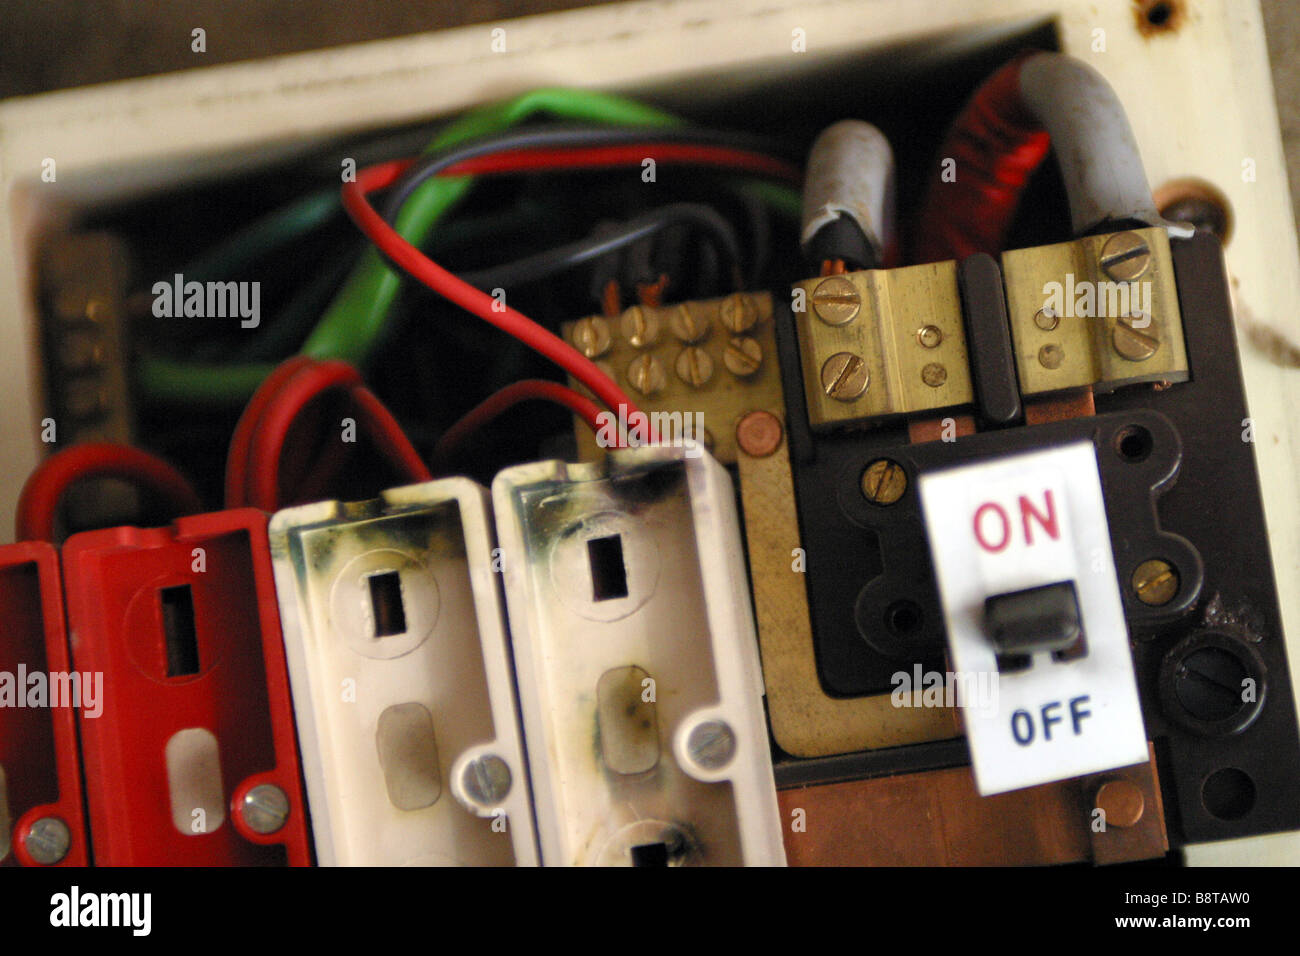 hight resolution of house fuse box 1970 owner manual wiring diagram old home fuse box diagram